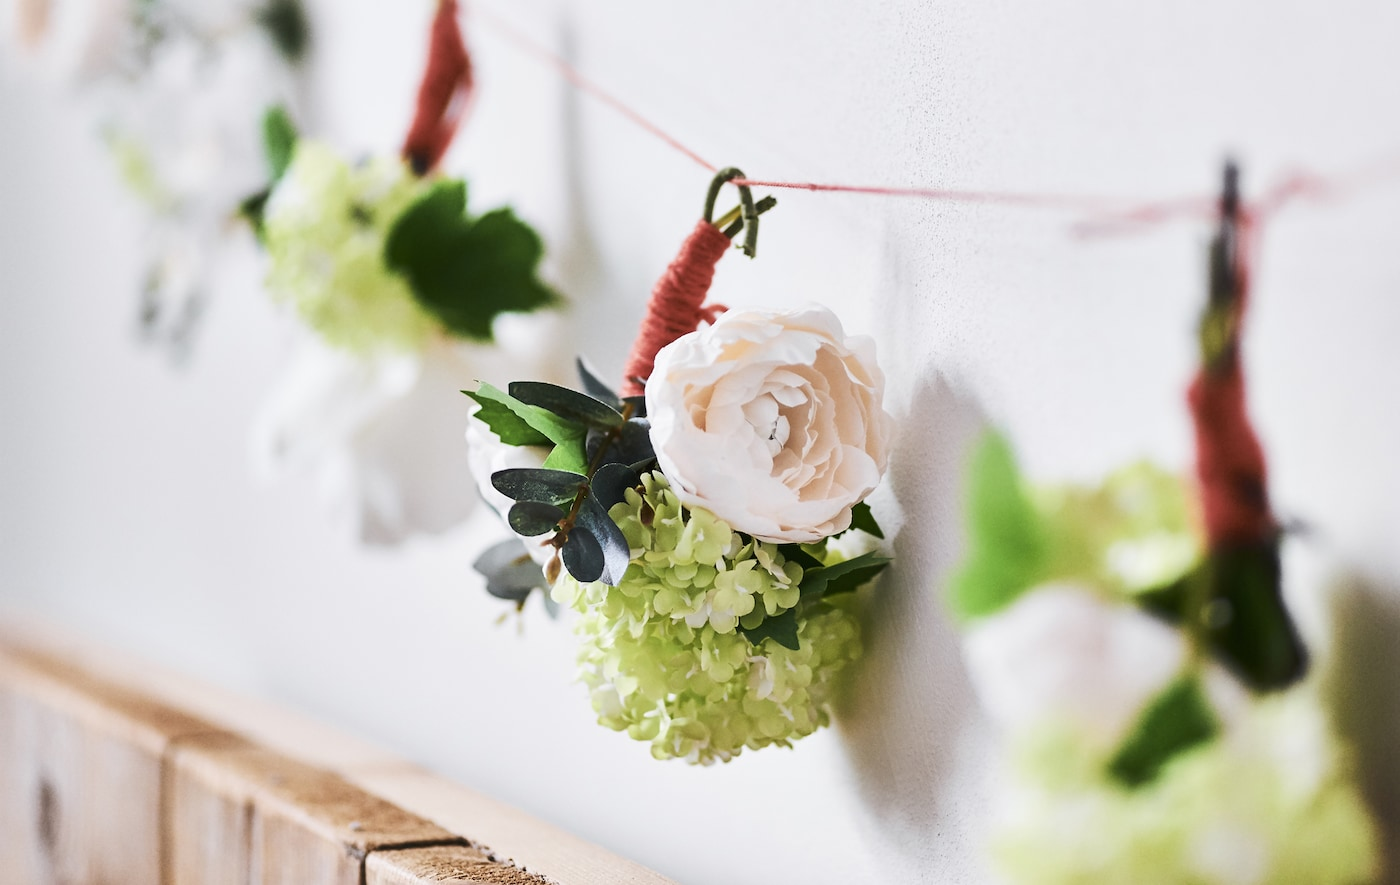 Close-up of a floral garland on a white wall.